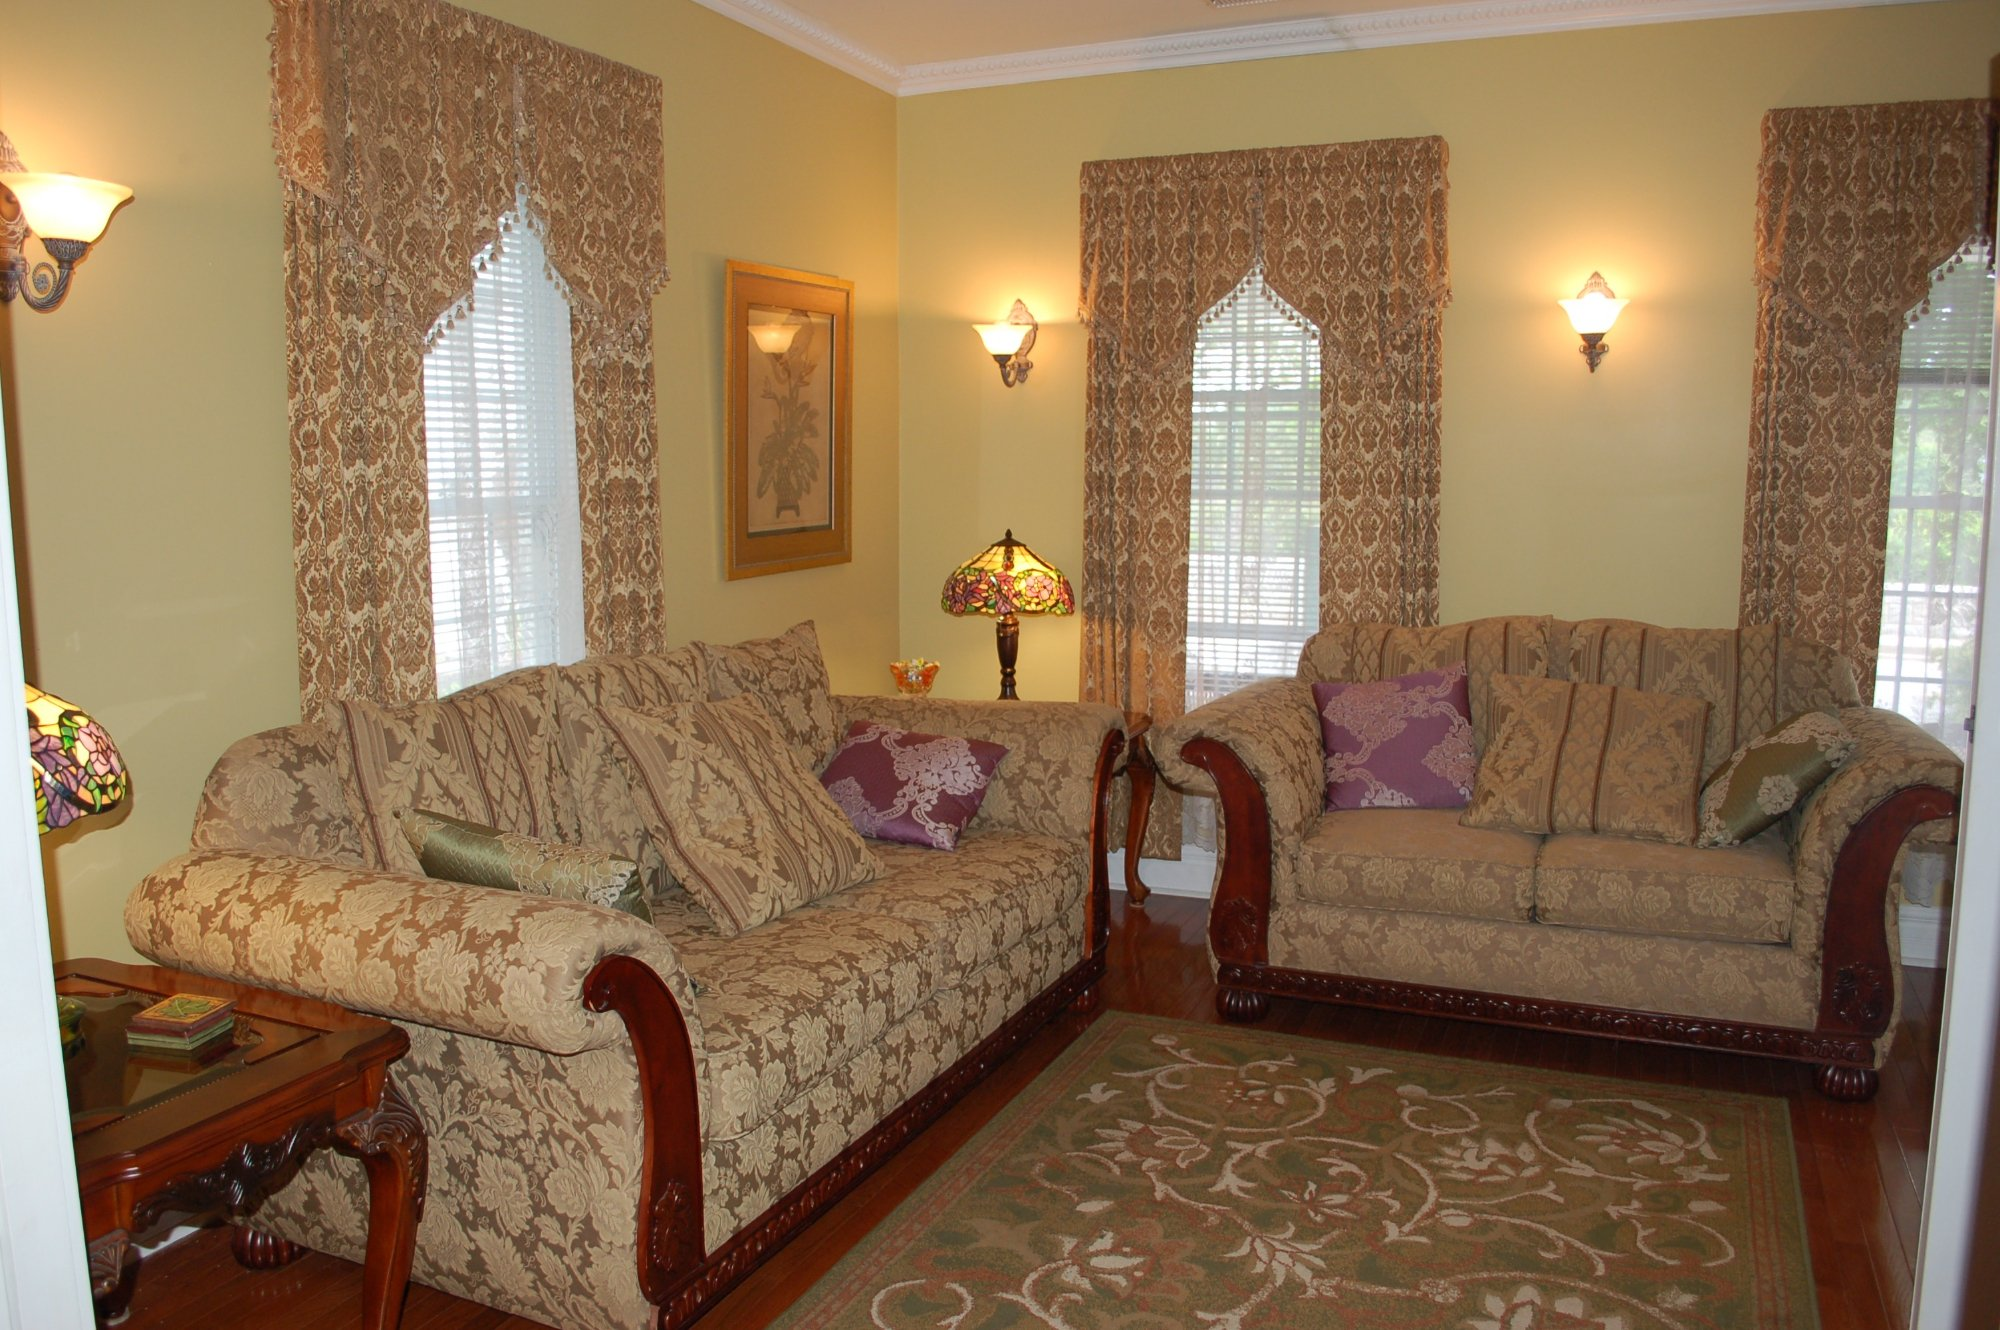 Accommodations niagara bed and breakfast niagara falls for Living room c o maidstone